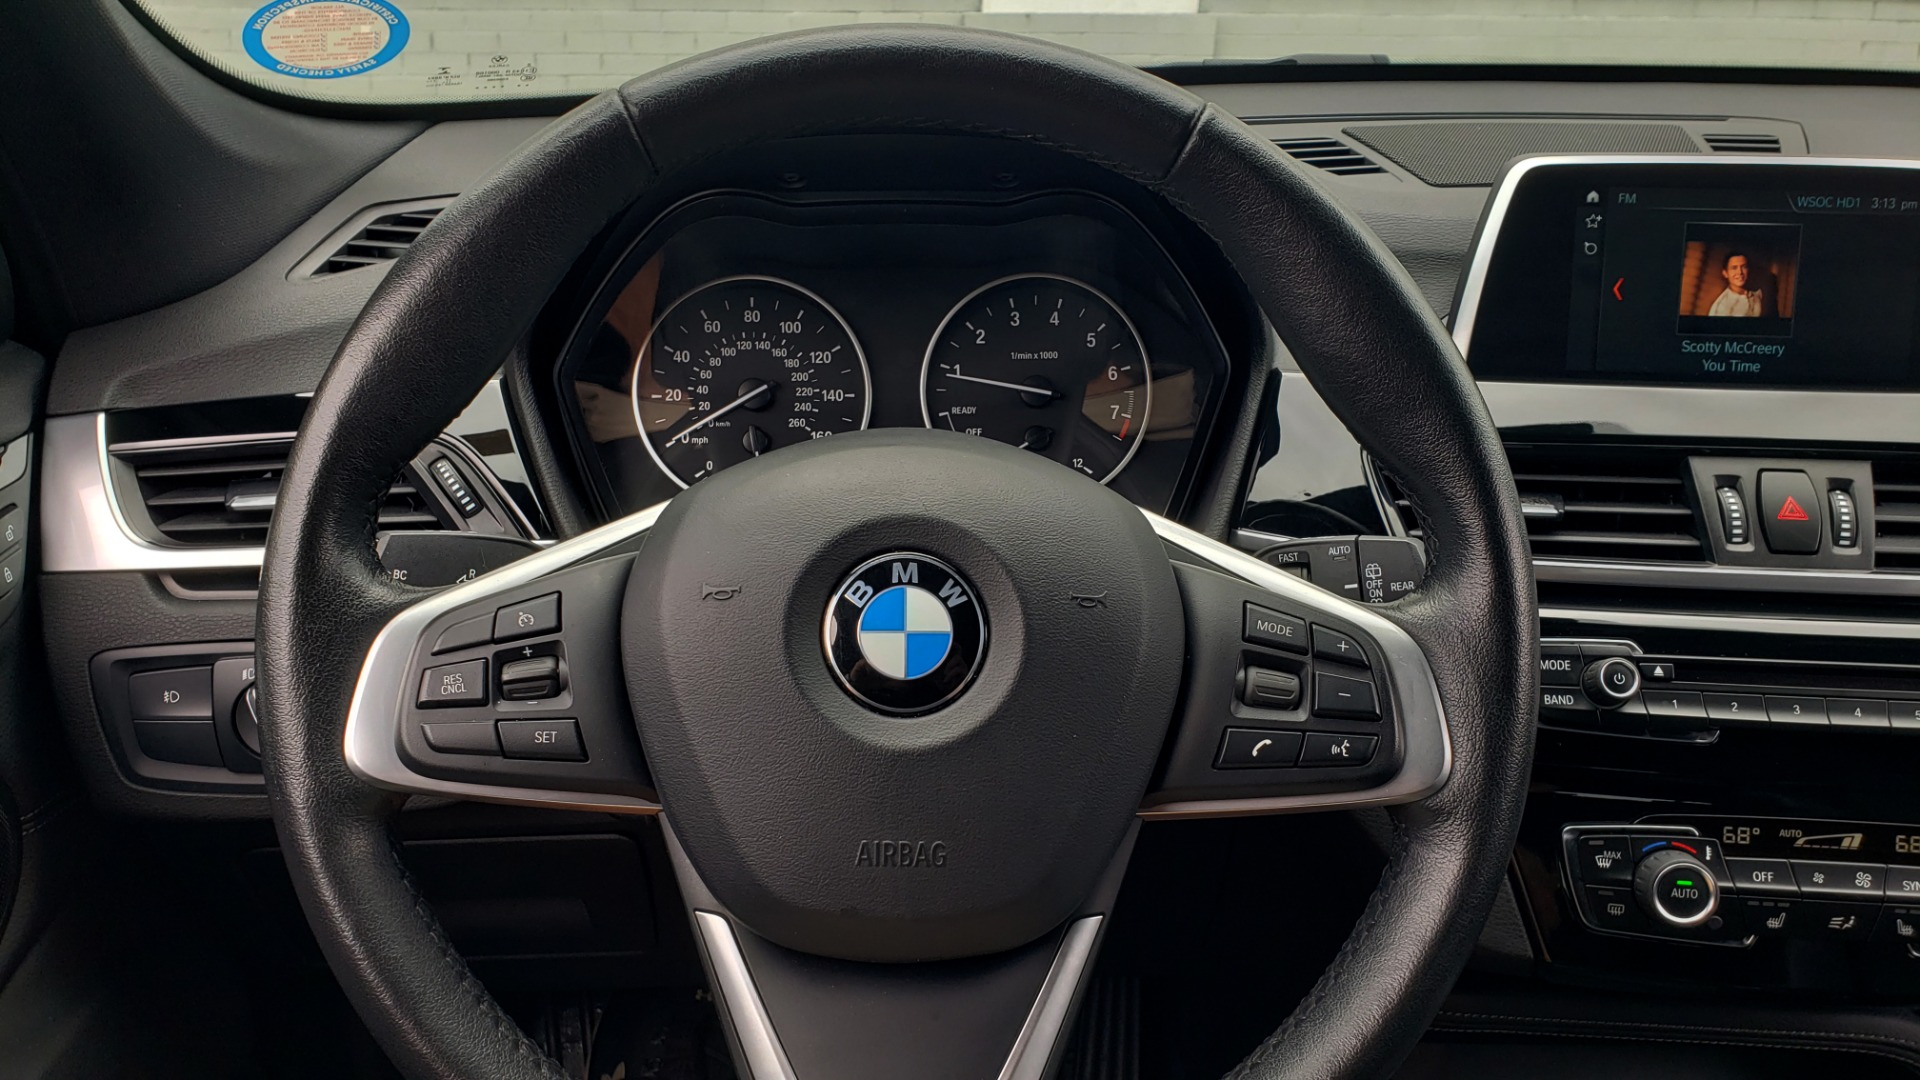 Used 2018 BMW X1 XDRIVE38I / NAV / CONV PKG / PANO-ROOF / HTD STS / REARVIEW for sale $28,995 at Formula Imports in Charlotte NC 28227 39